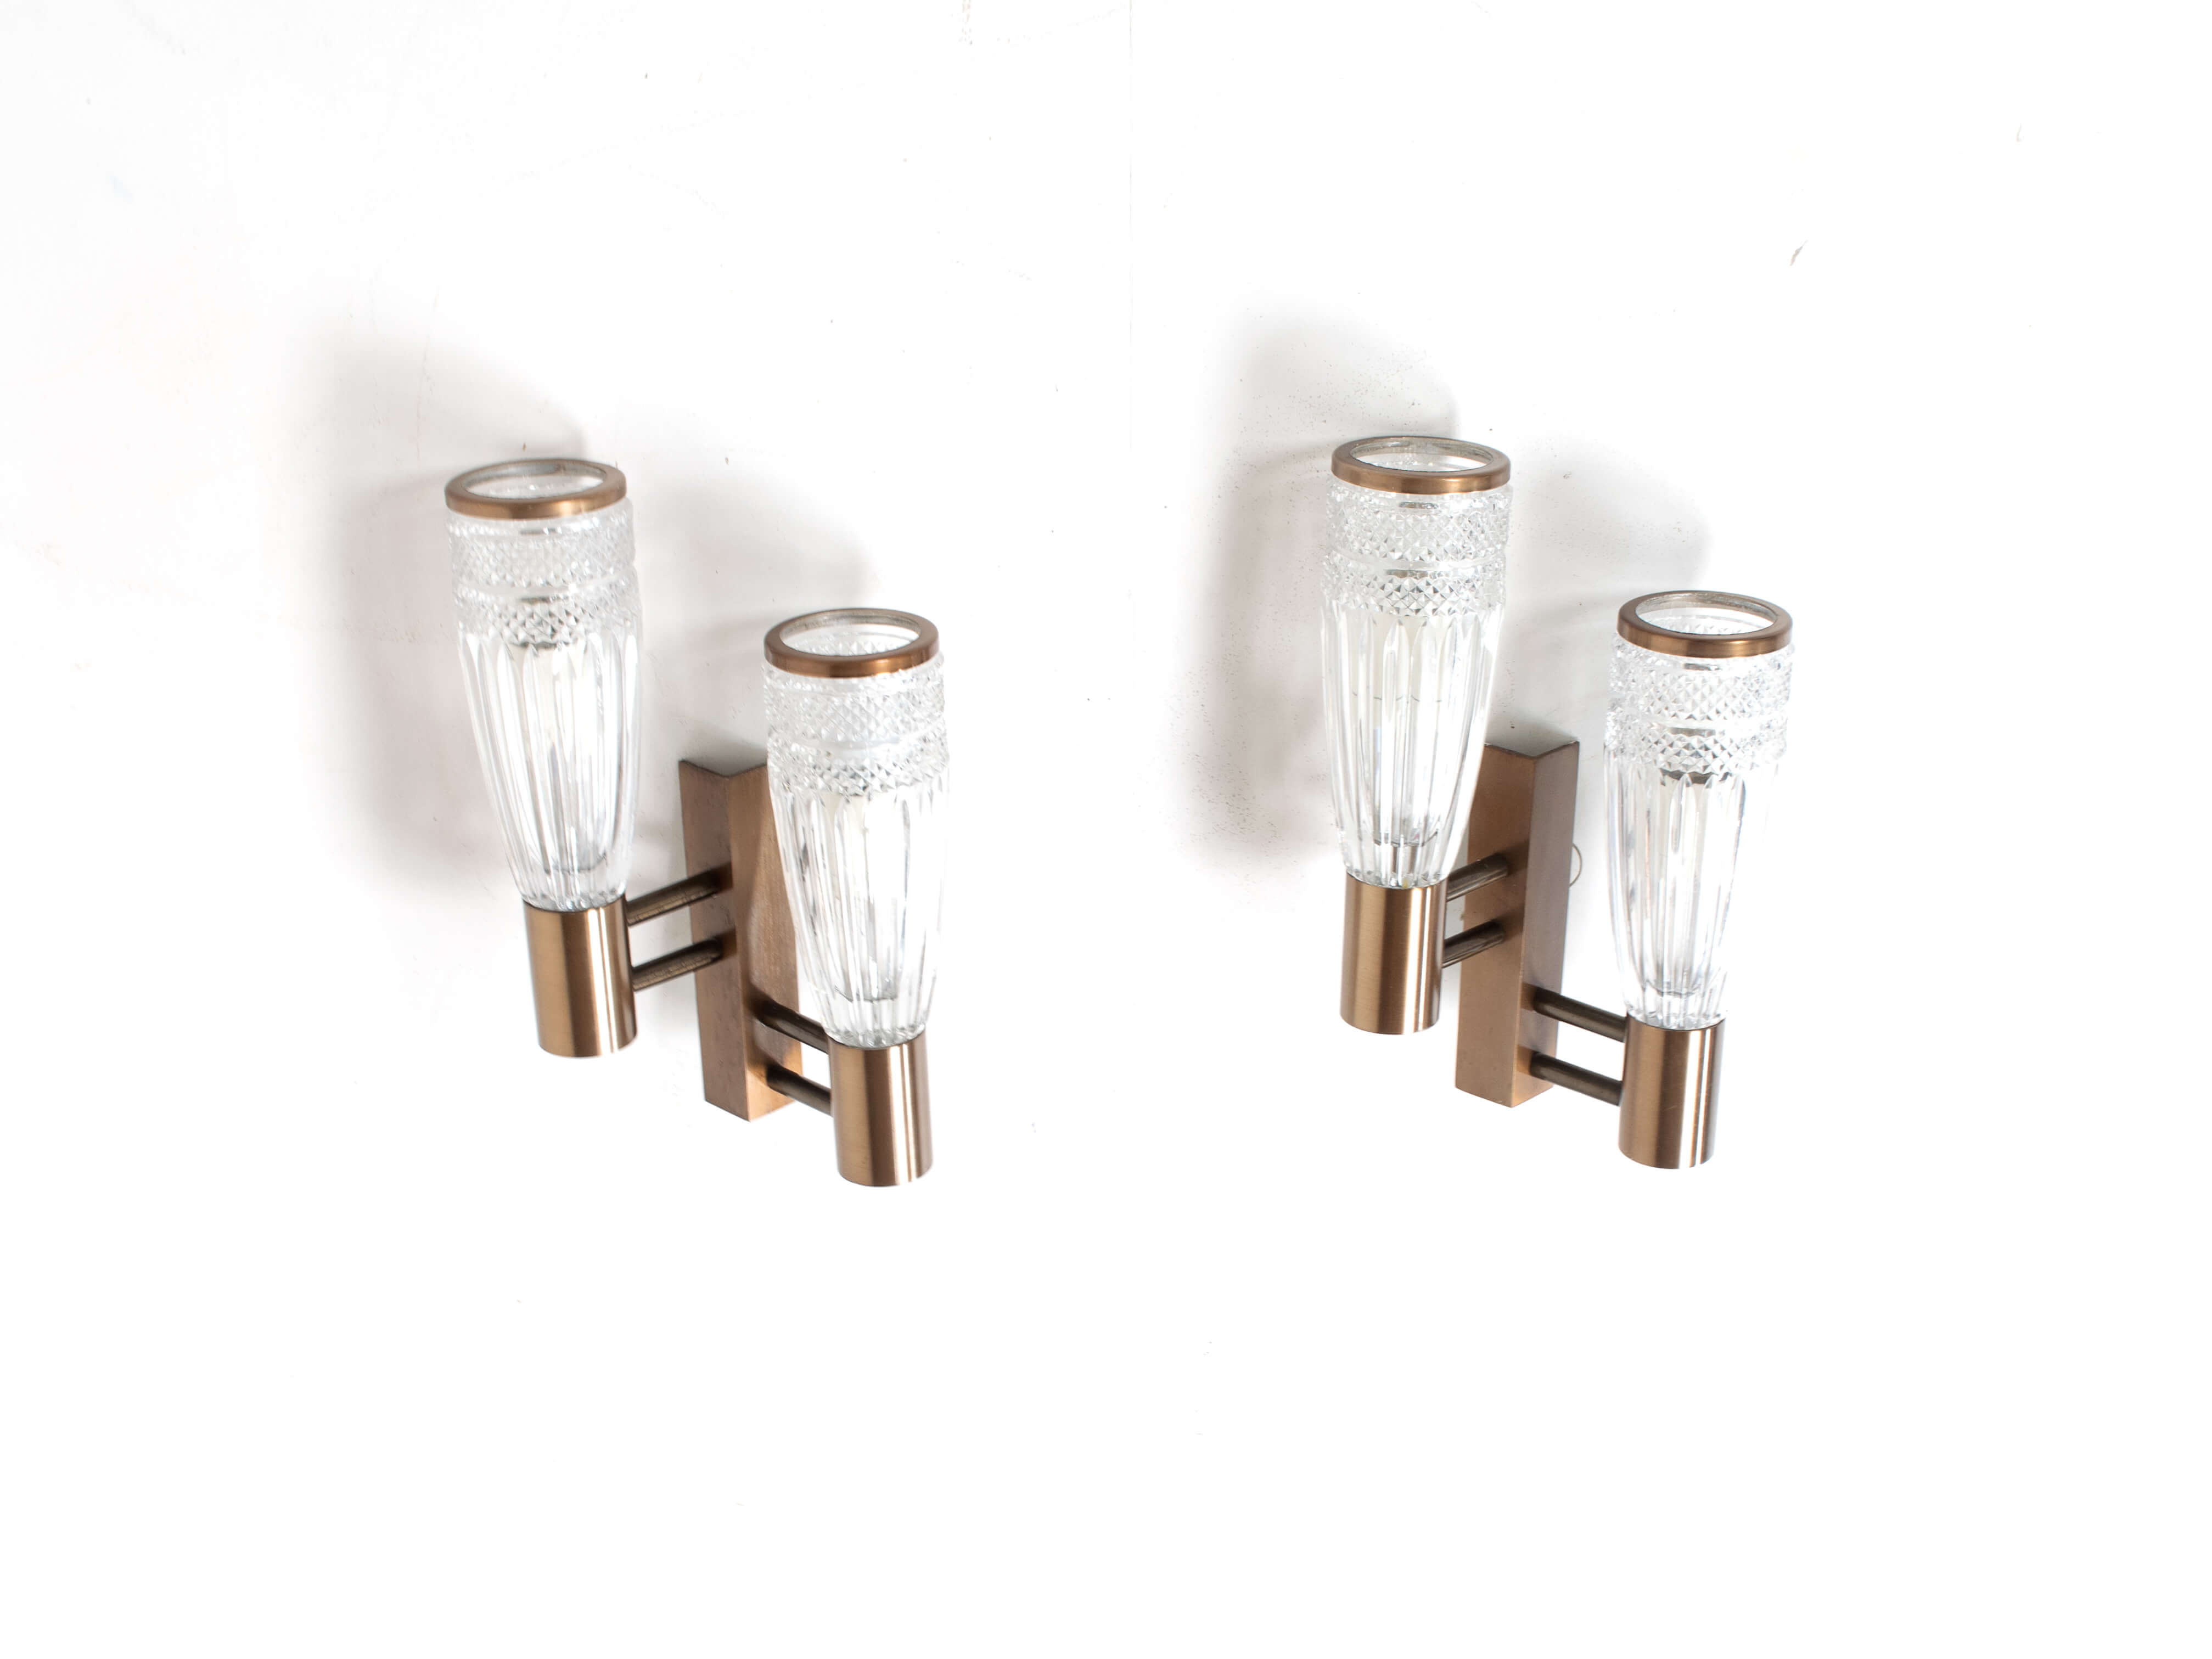 Set of Three Stilux Wall Appliques in Glass, Wood and Metal from Italy 1960s